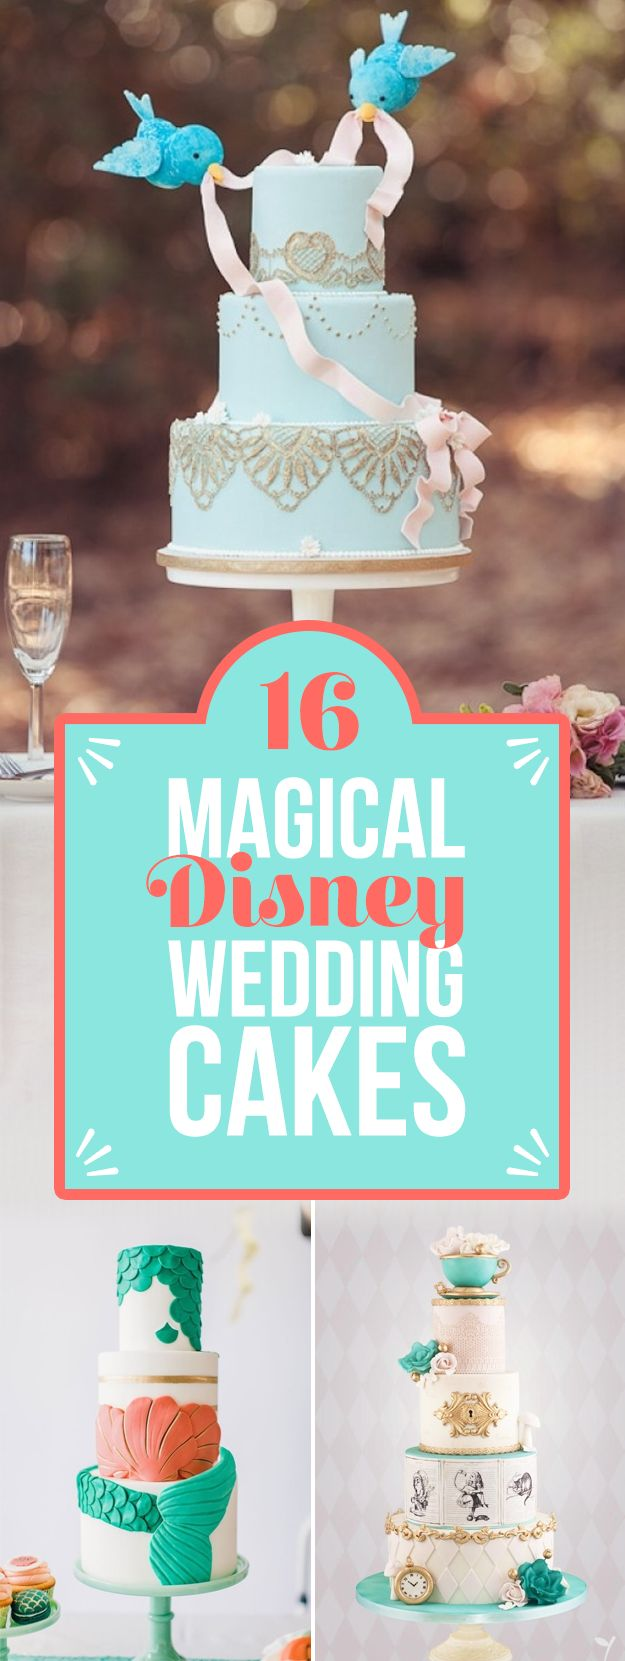 16 Perfect Disney Wedding Cakes You'll Want To Make Part Of Your World -   .